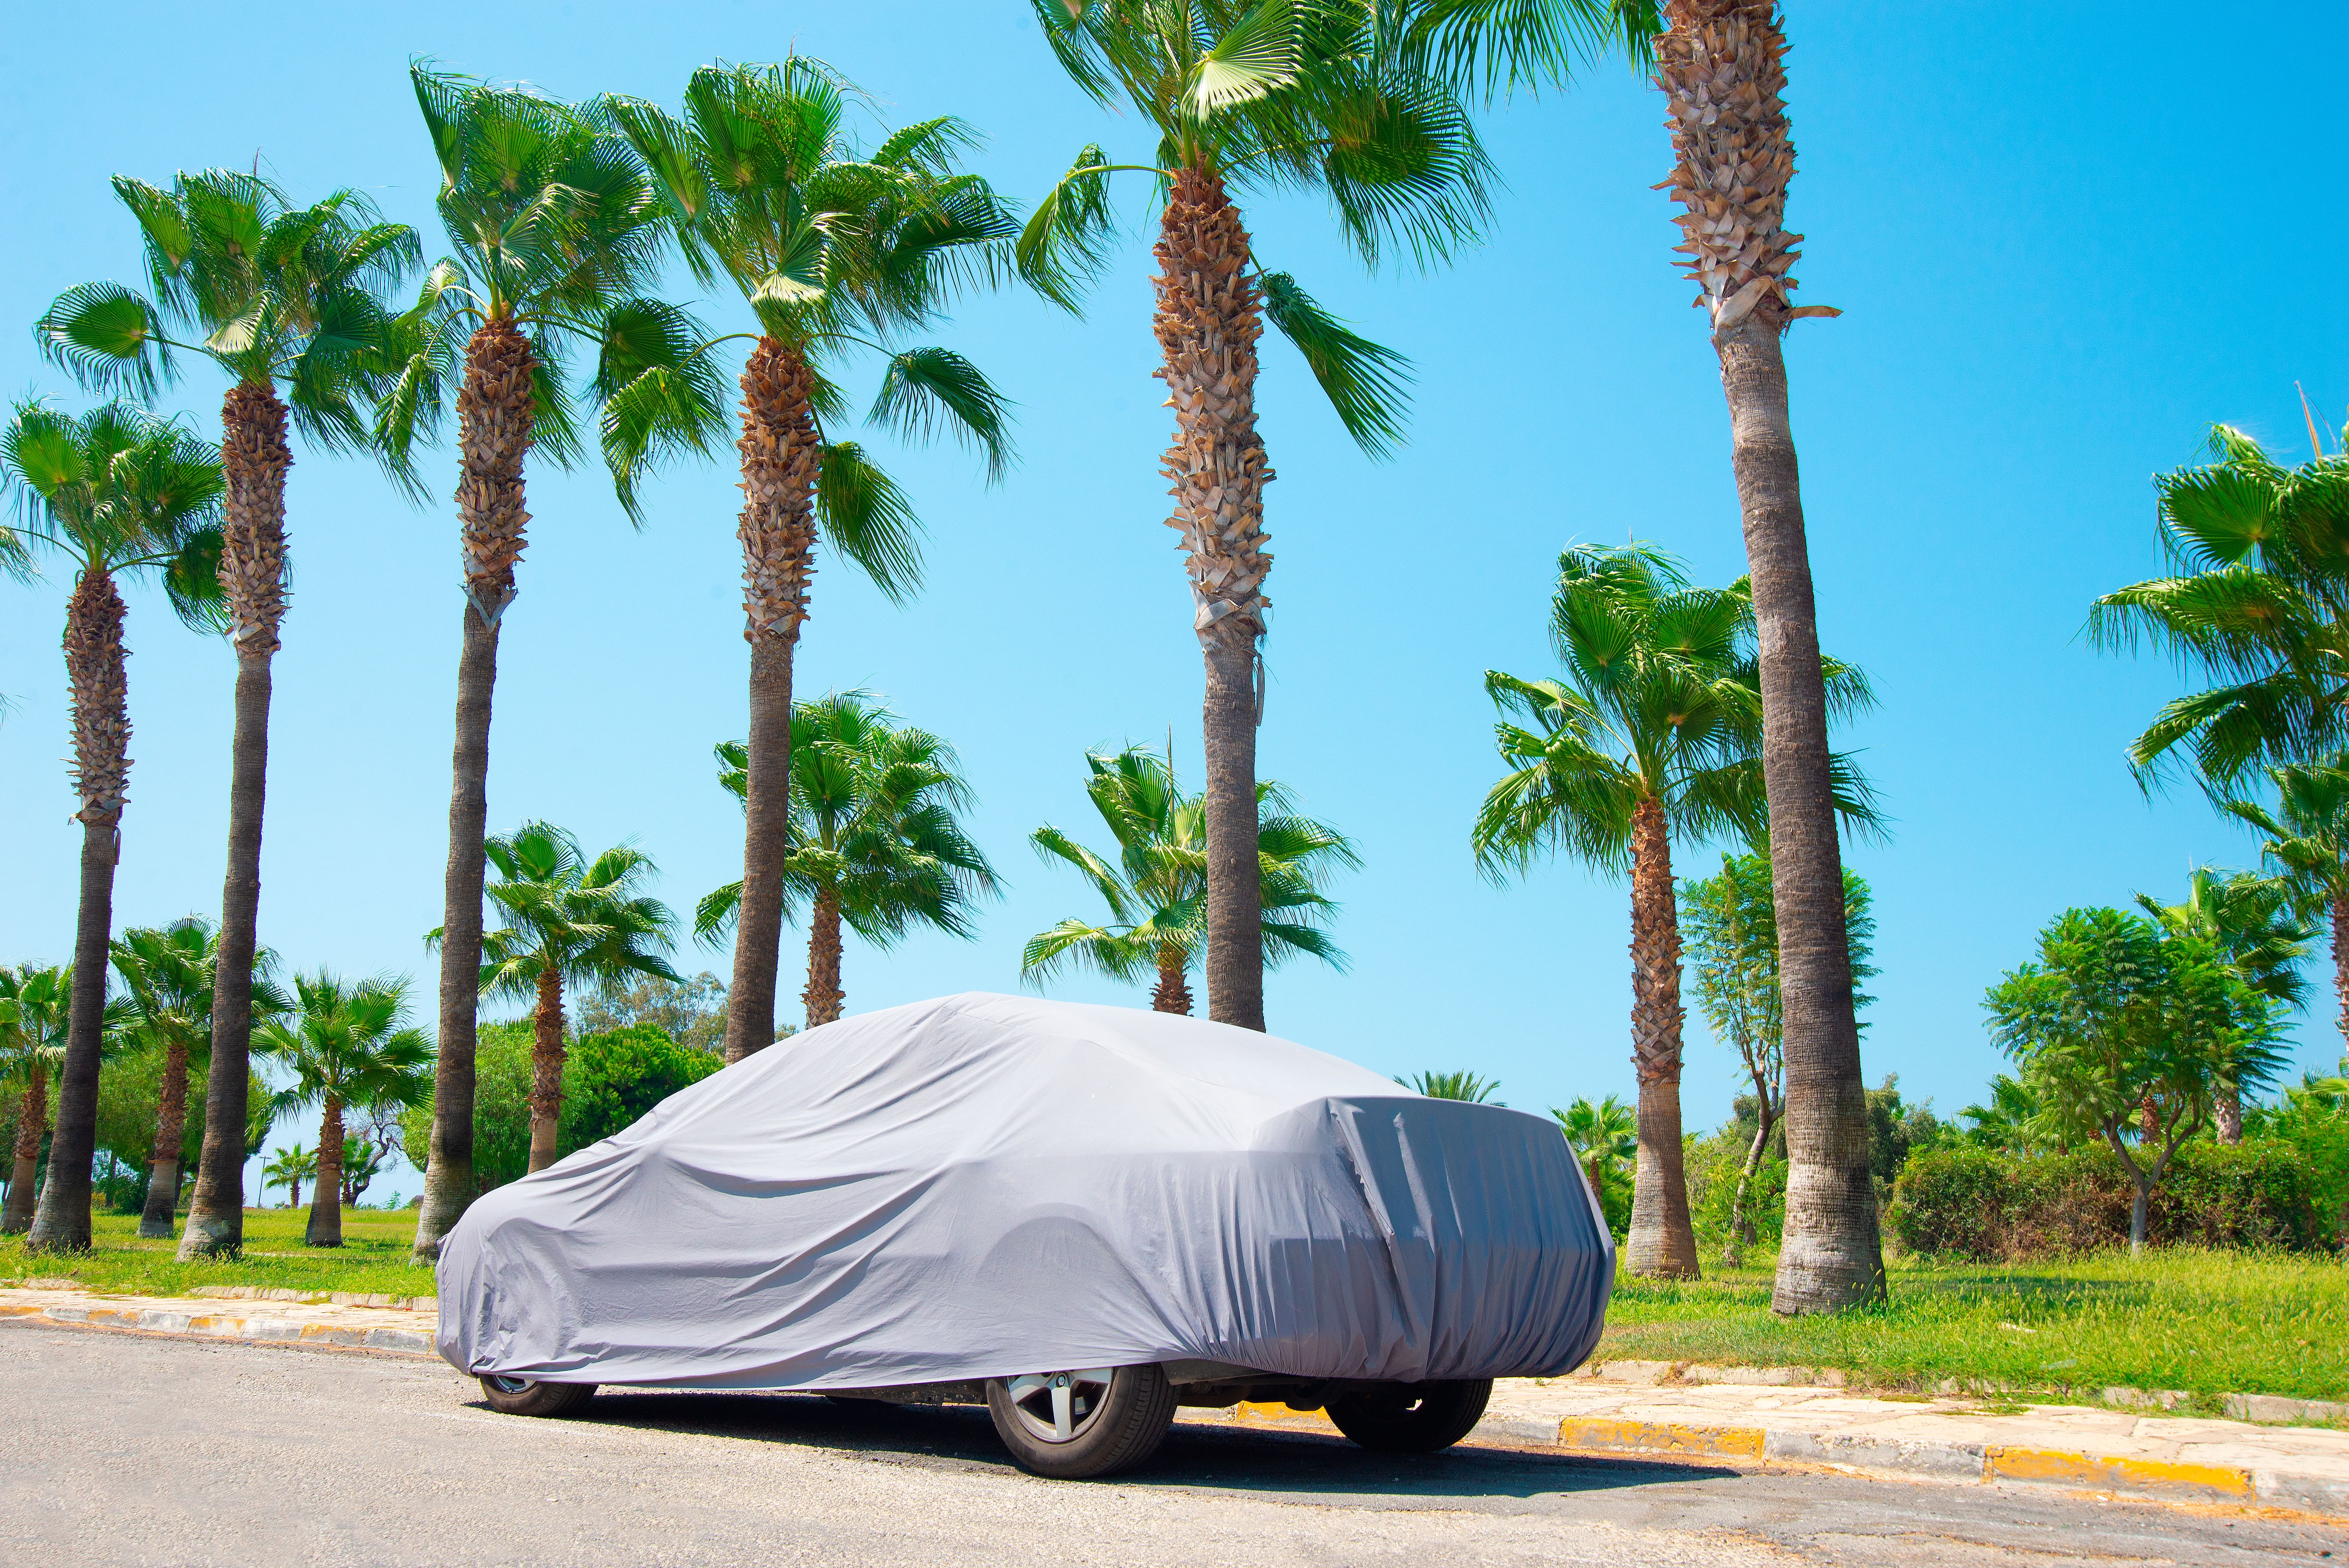 car-parking-auto-cover-sun-surrounded